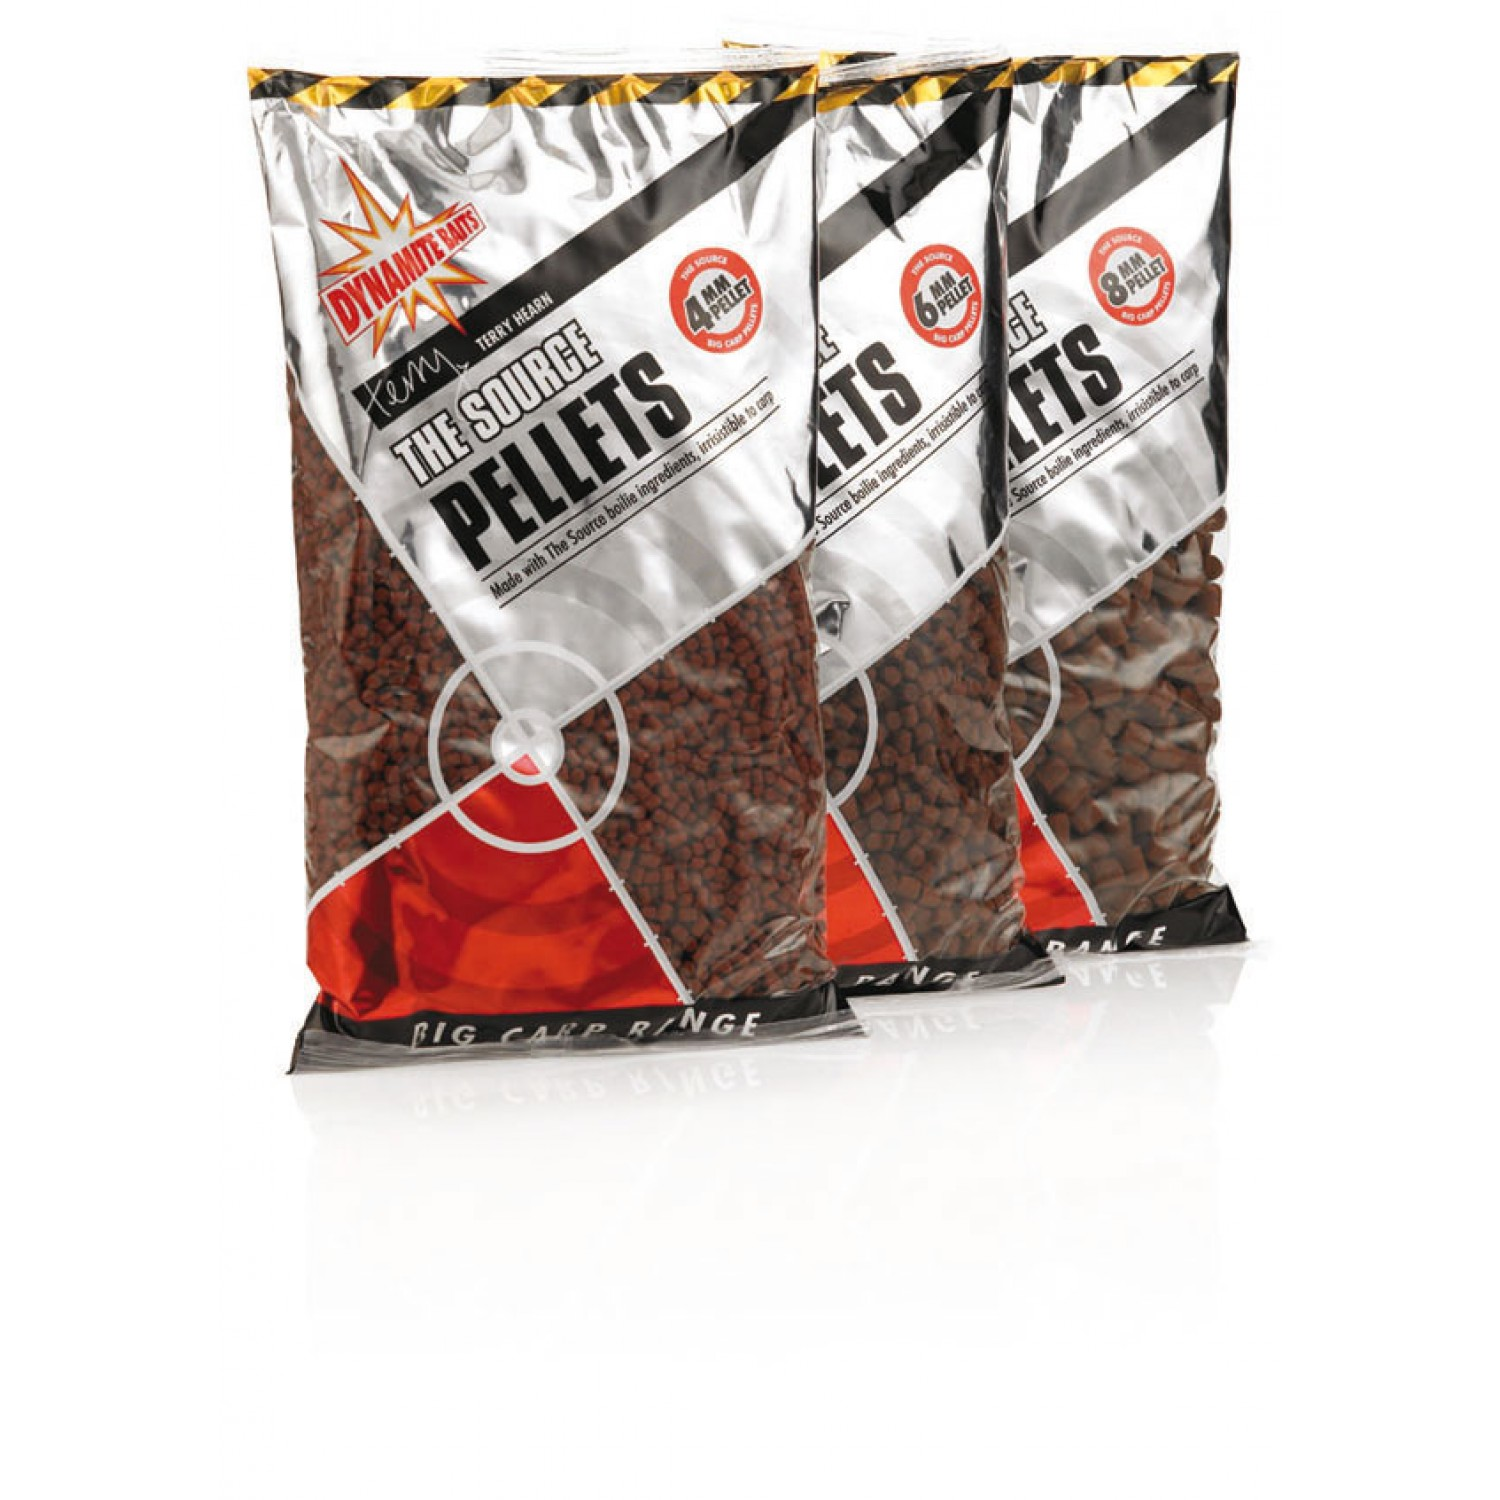 Dynamite Baits Pellets 900g, The Source 4-8mm